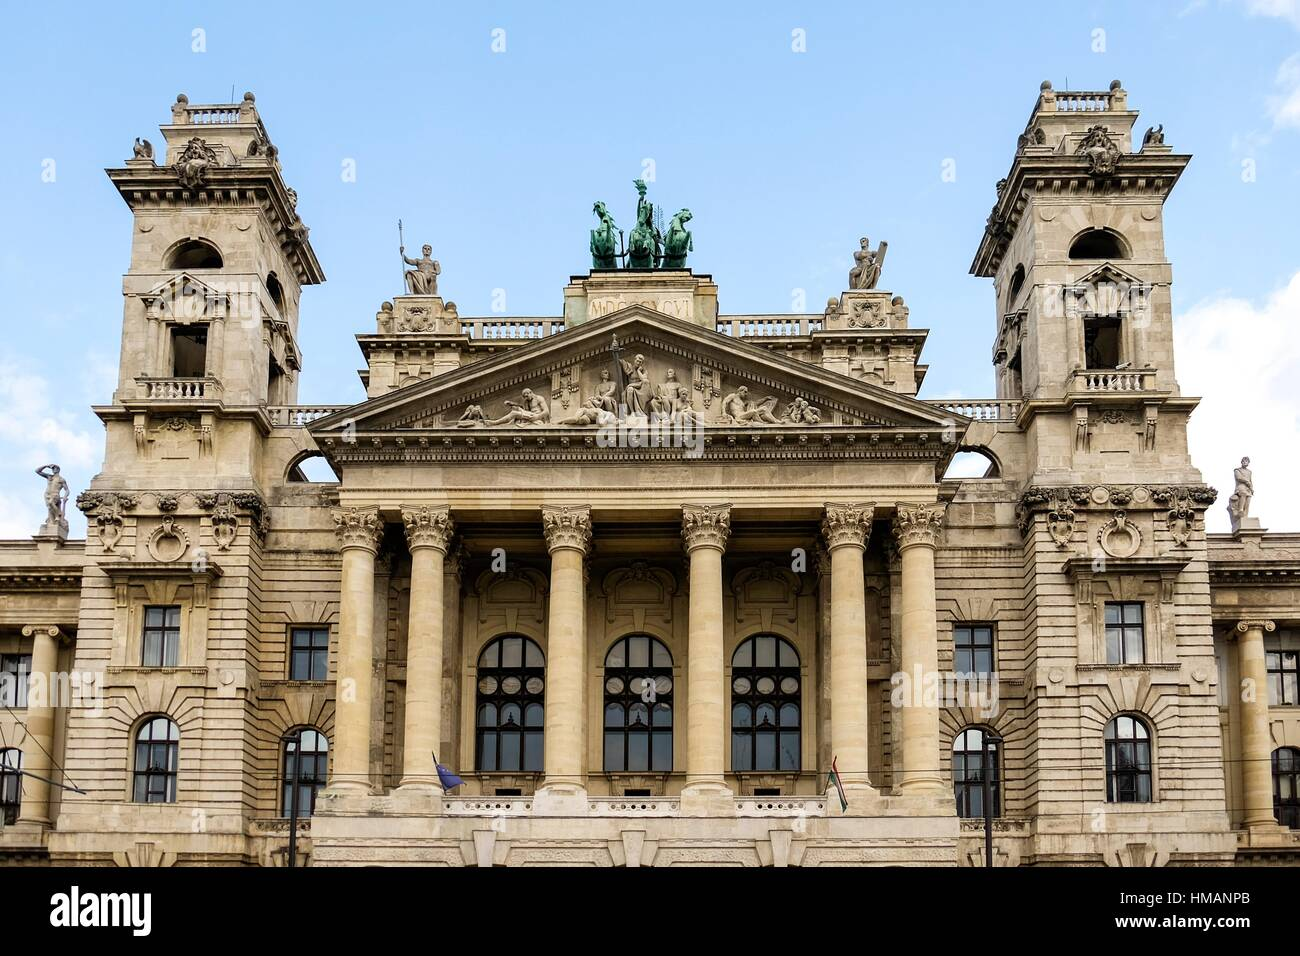 The Museum of Ethnography in Budapest features Hungarian folk traditions from different eras. - Stock Image